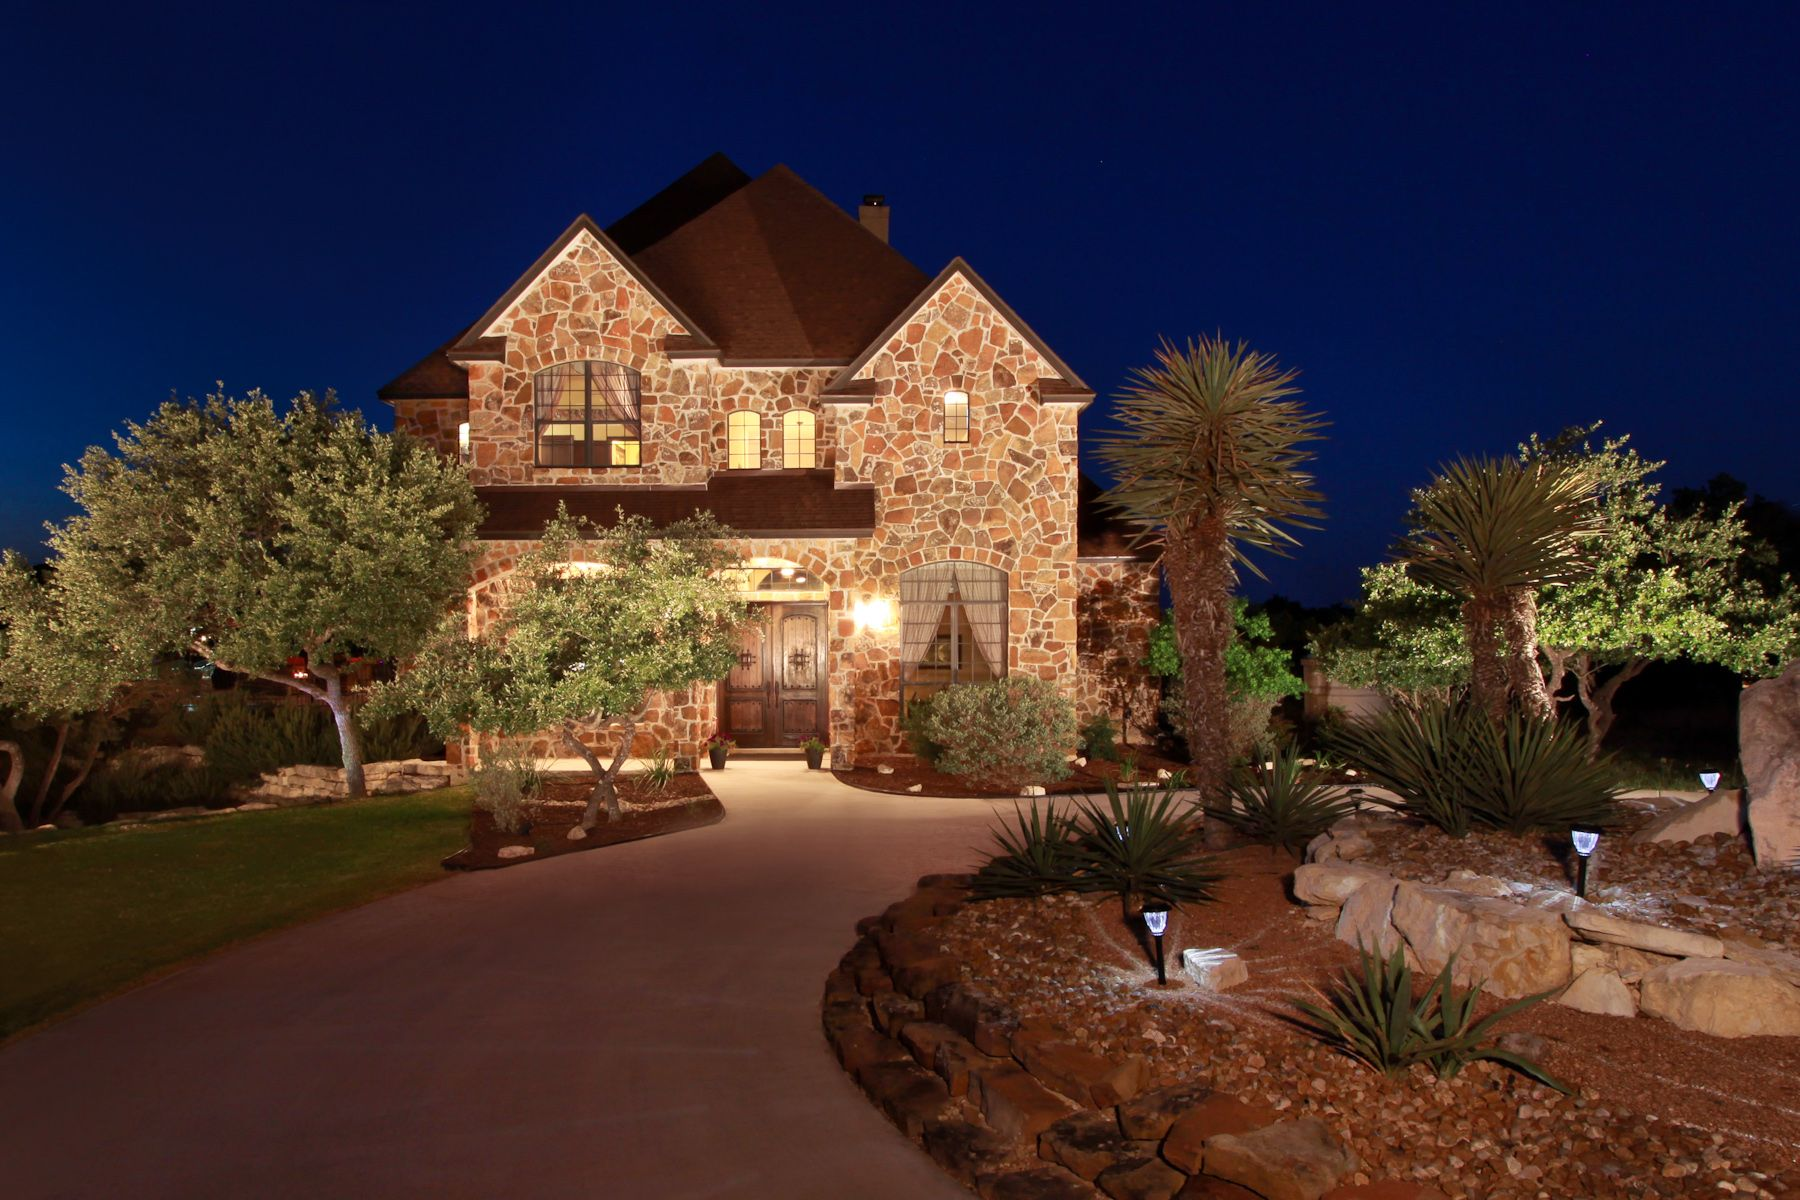 Amazing home with all the amenities that you would expect in a luxury home.